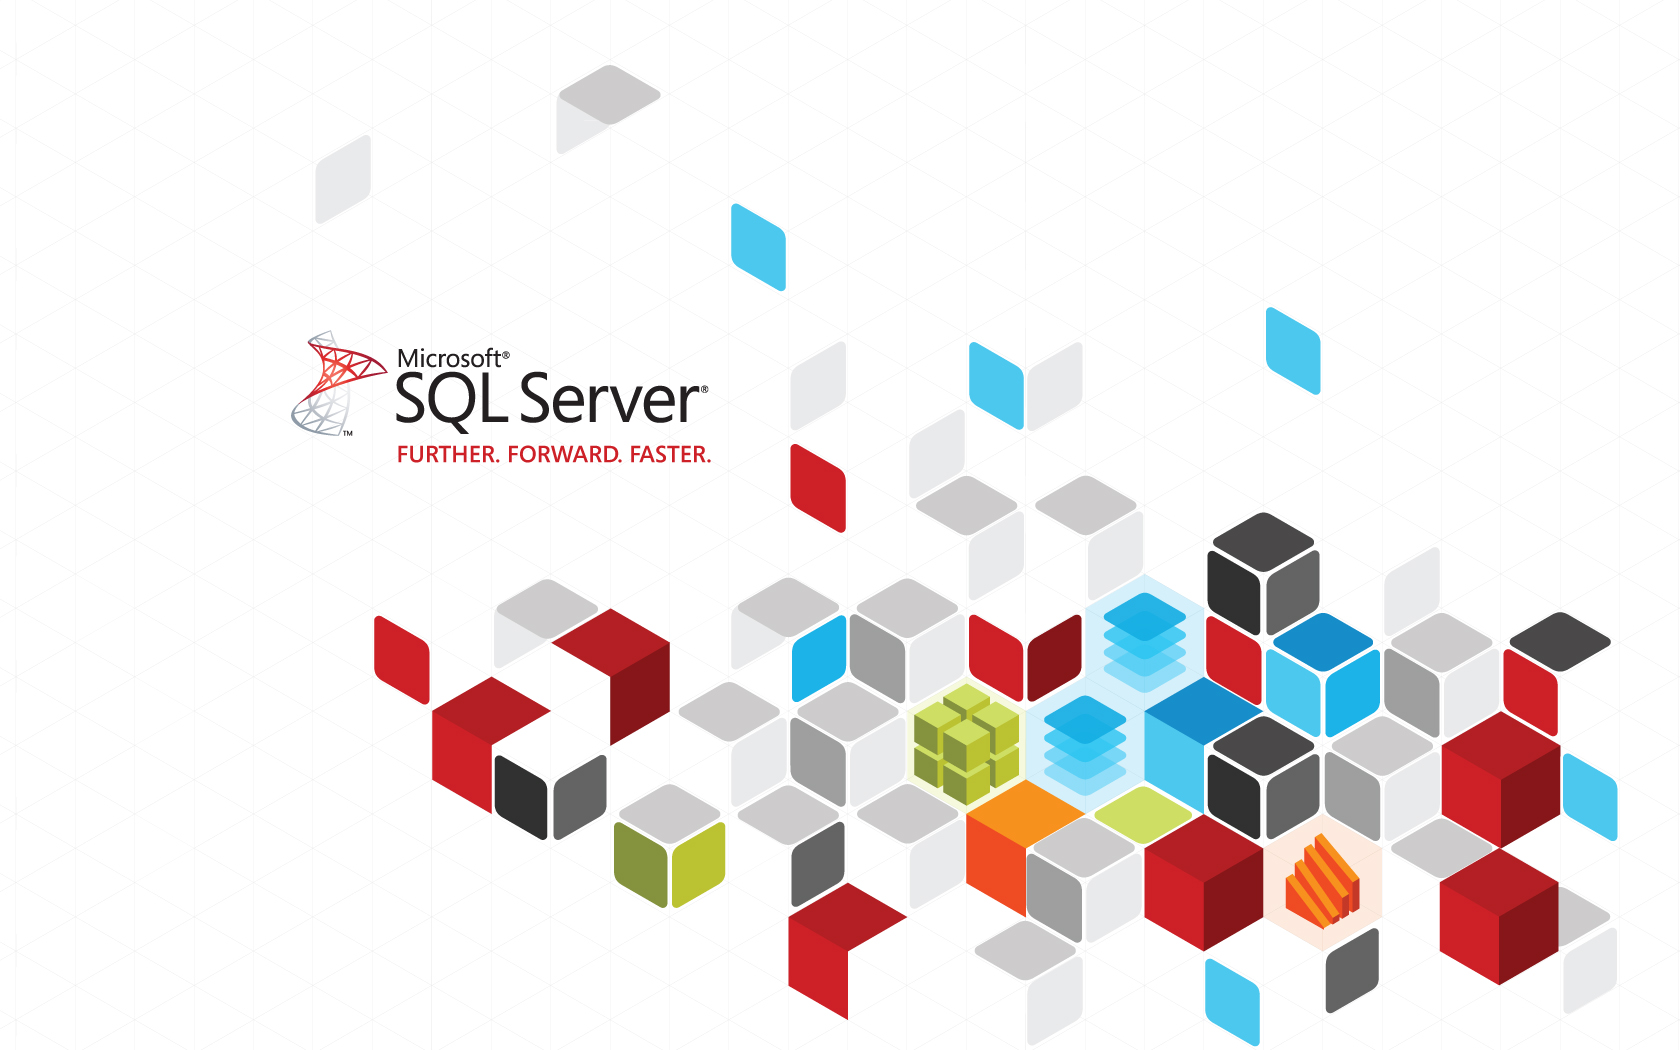 SQL_2012_Desktop_Background_1680x1050_101111